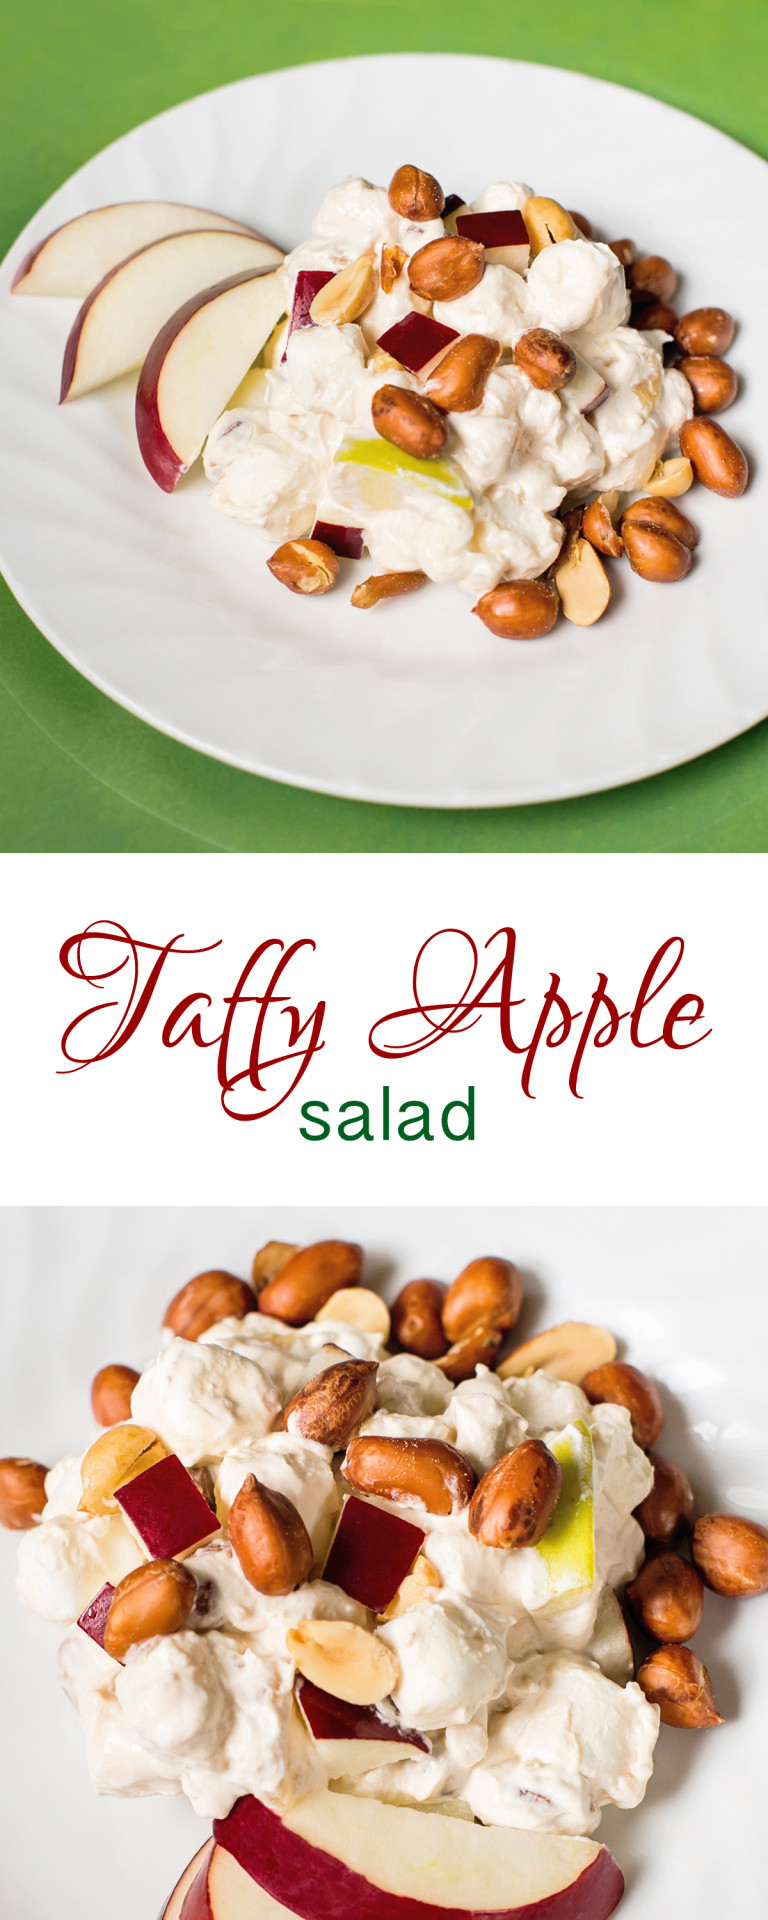 Taffy Apple Salad | theinspiredparent.com